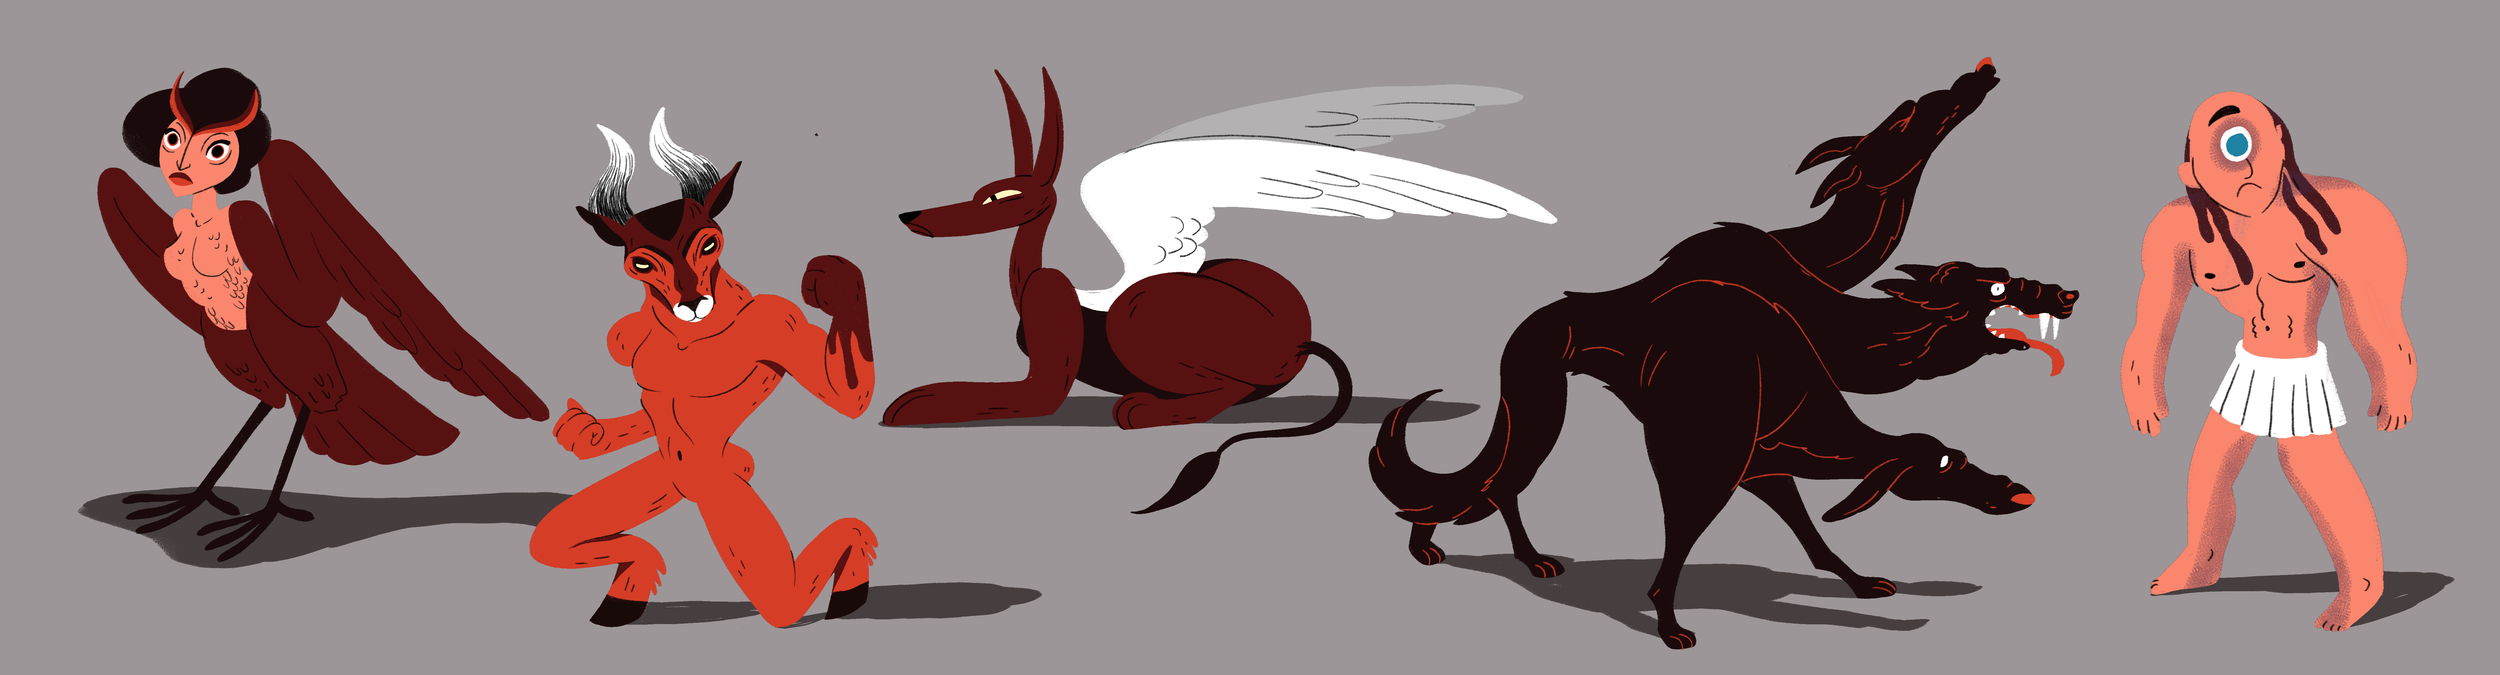 The greek mythology is filled with strange enchanting creatures. Here are a couple of my favourites :) It was really fun to sketch and devellop these designs and I would love to have had more time to animate each one of them.